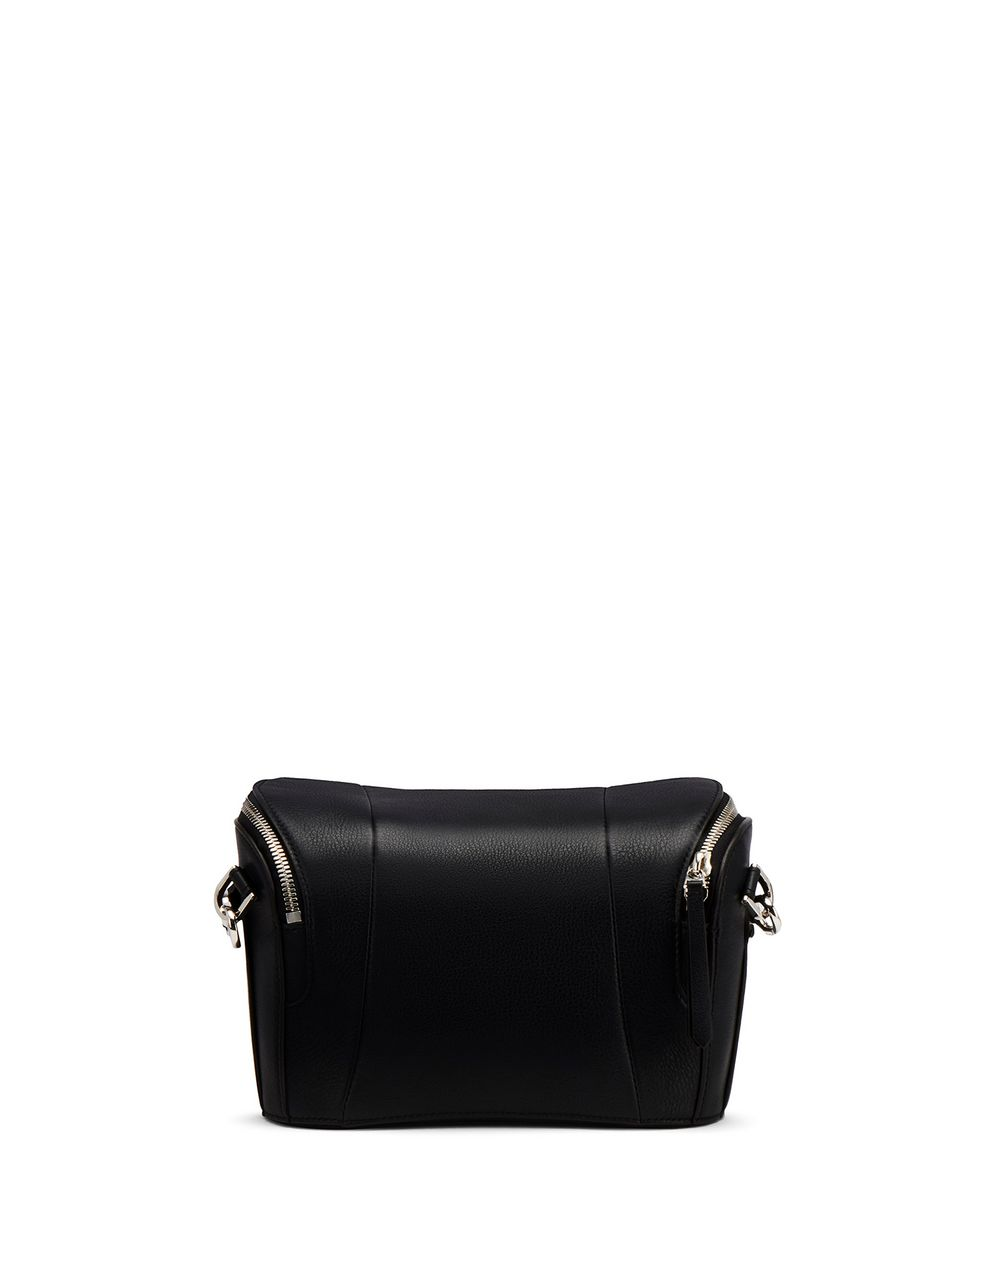 COOLER BAG SMALL - Lanvin